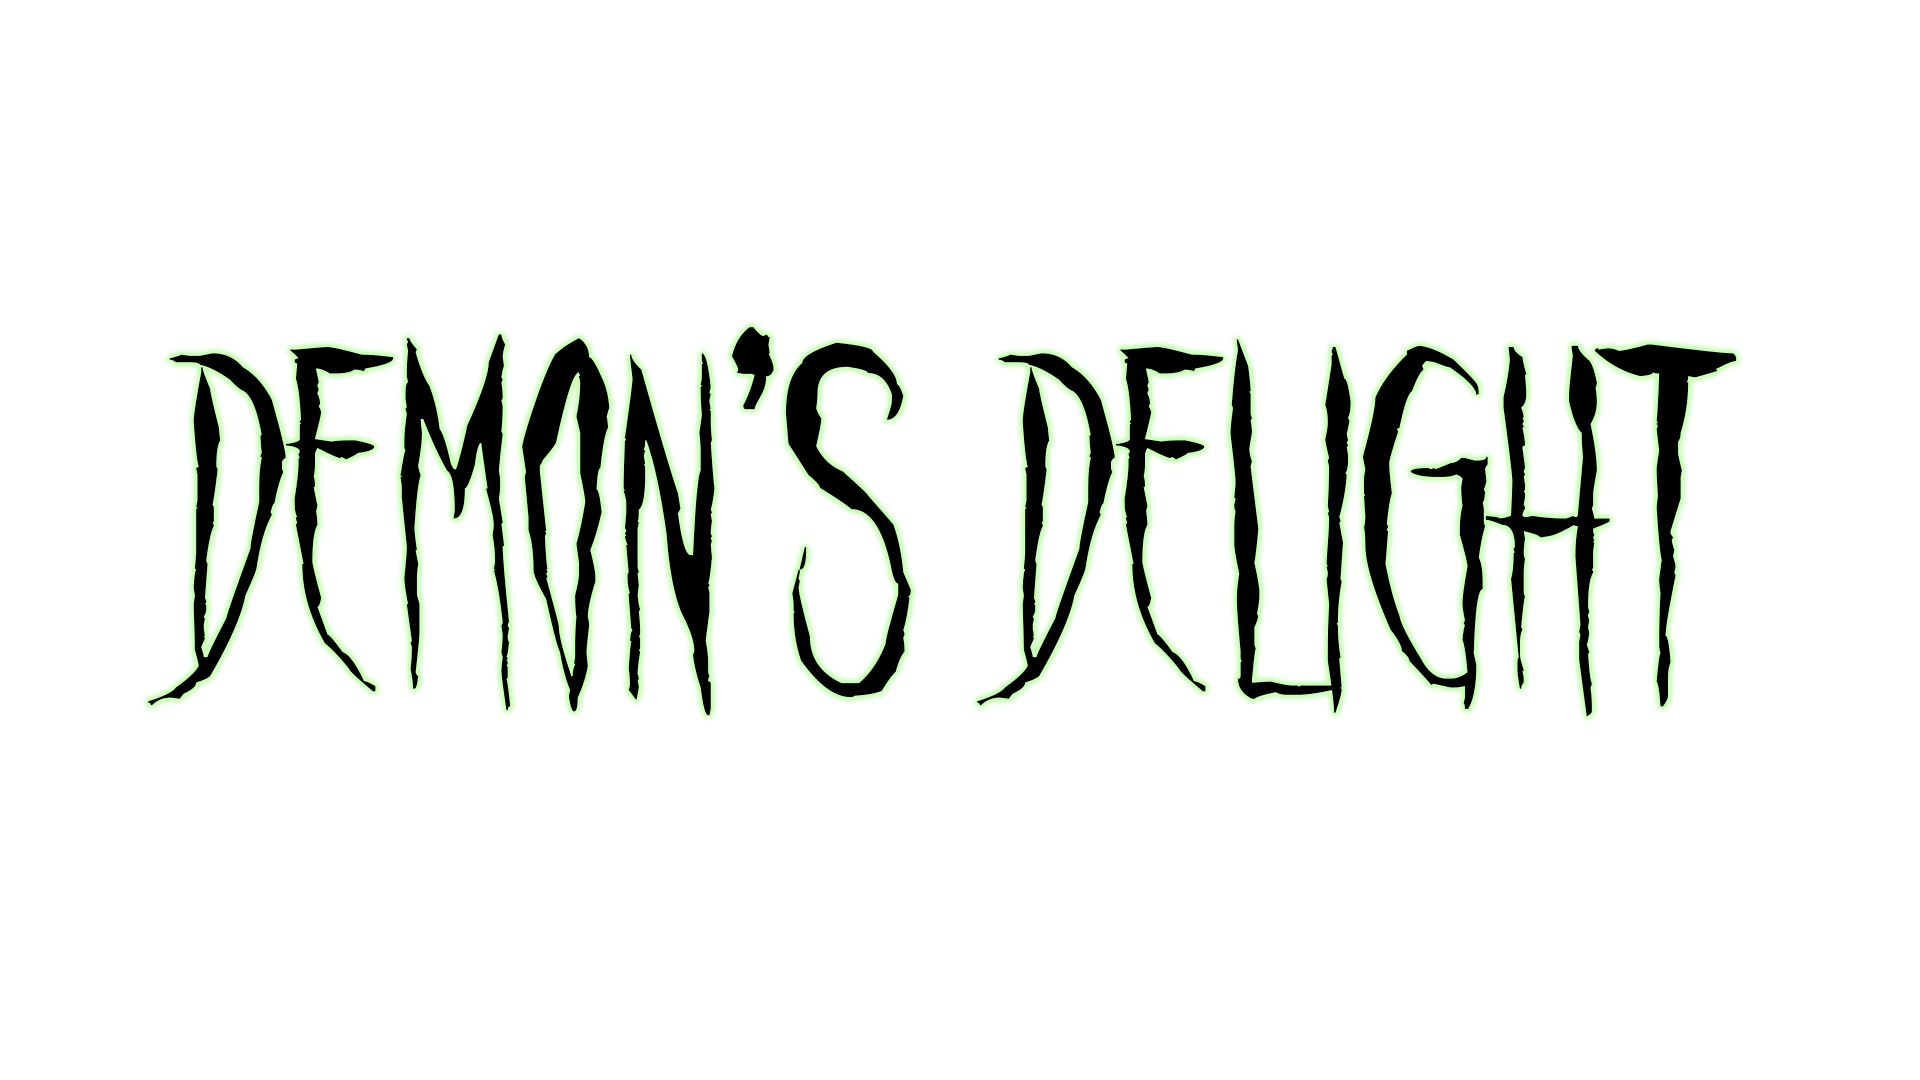 Demon's Delight